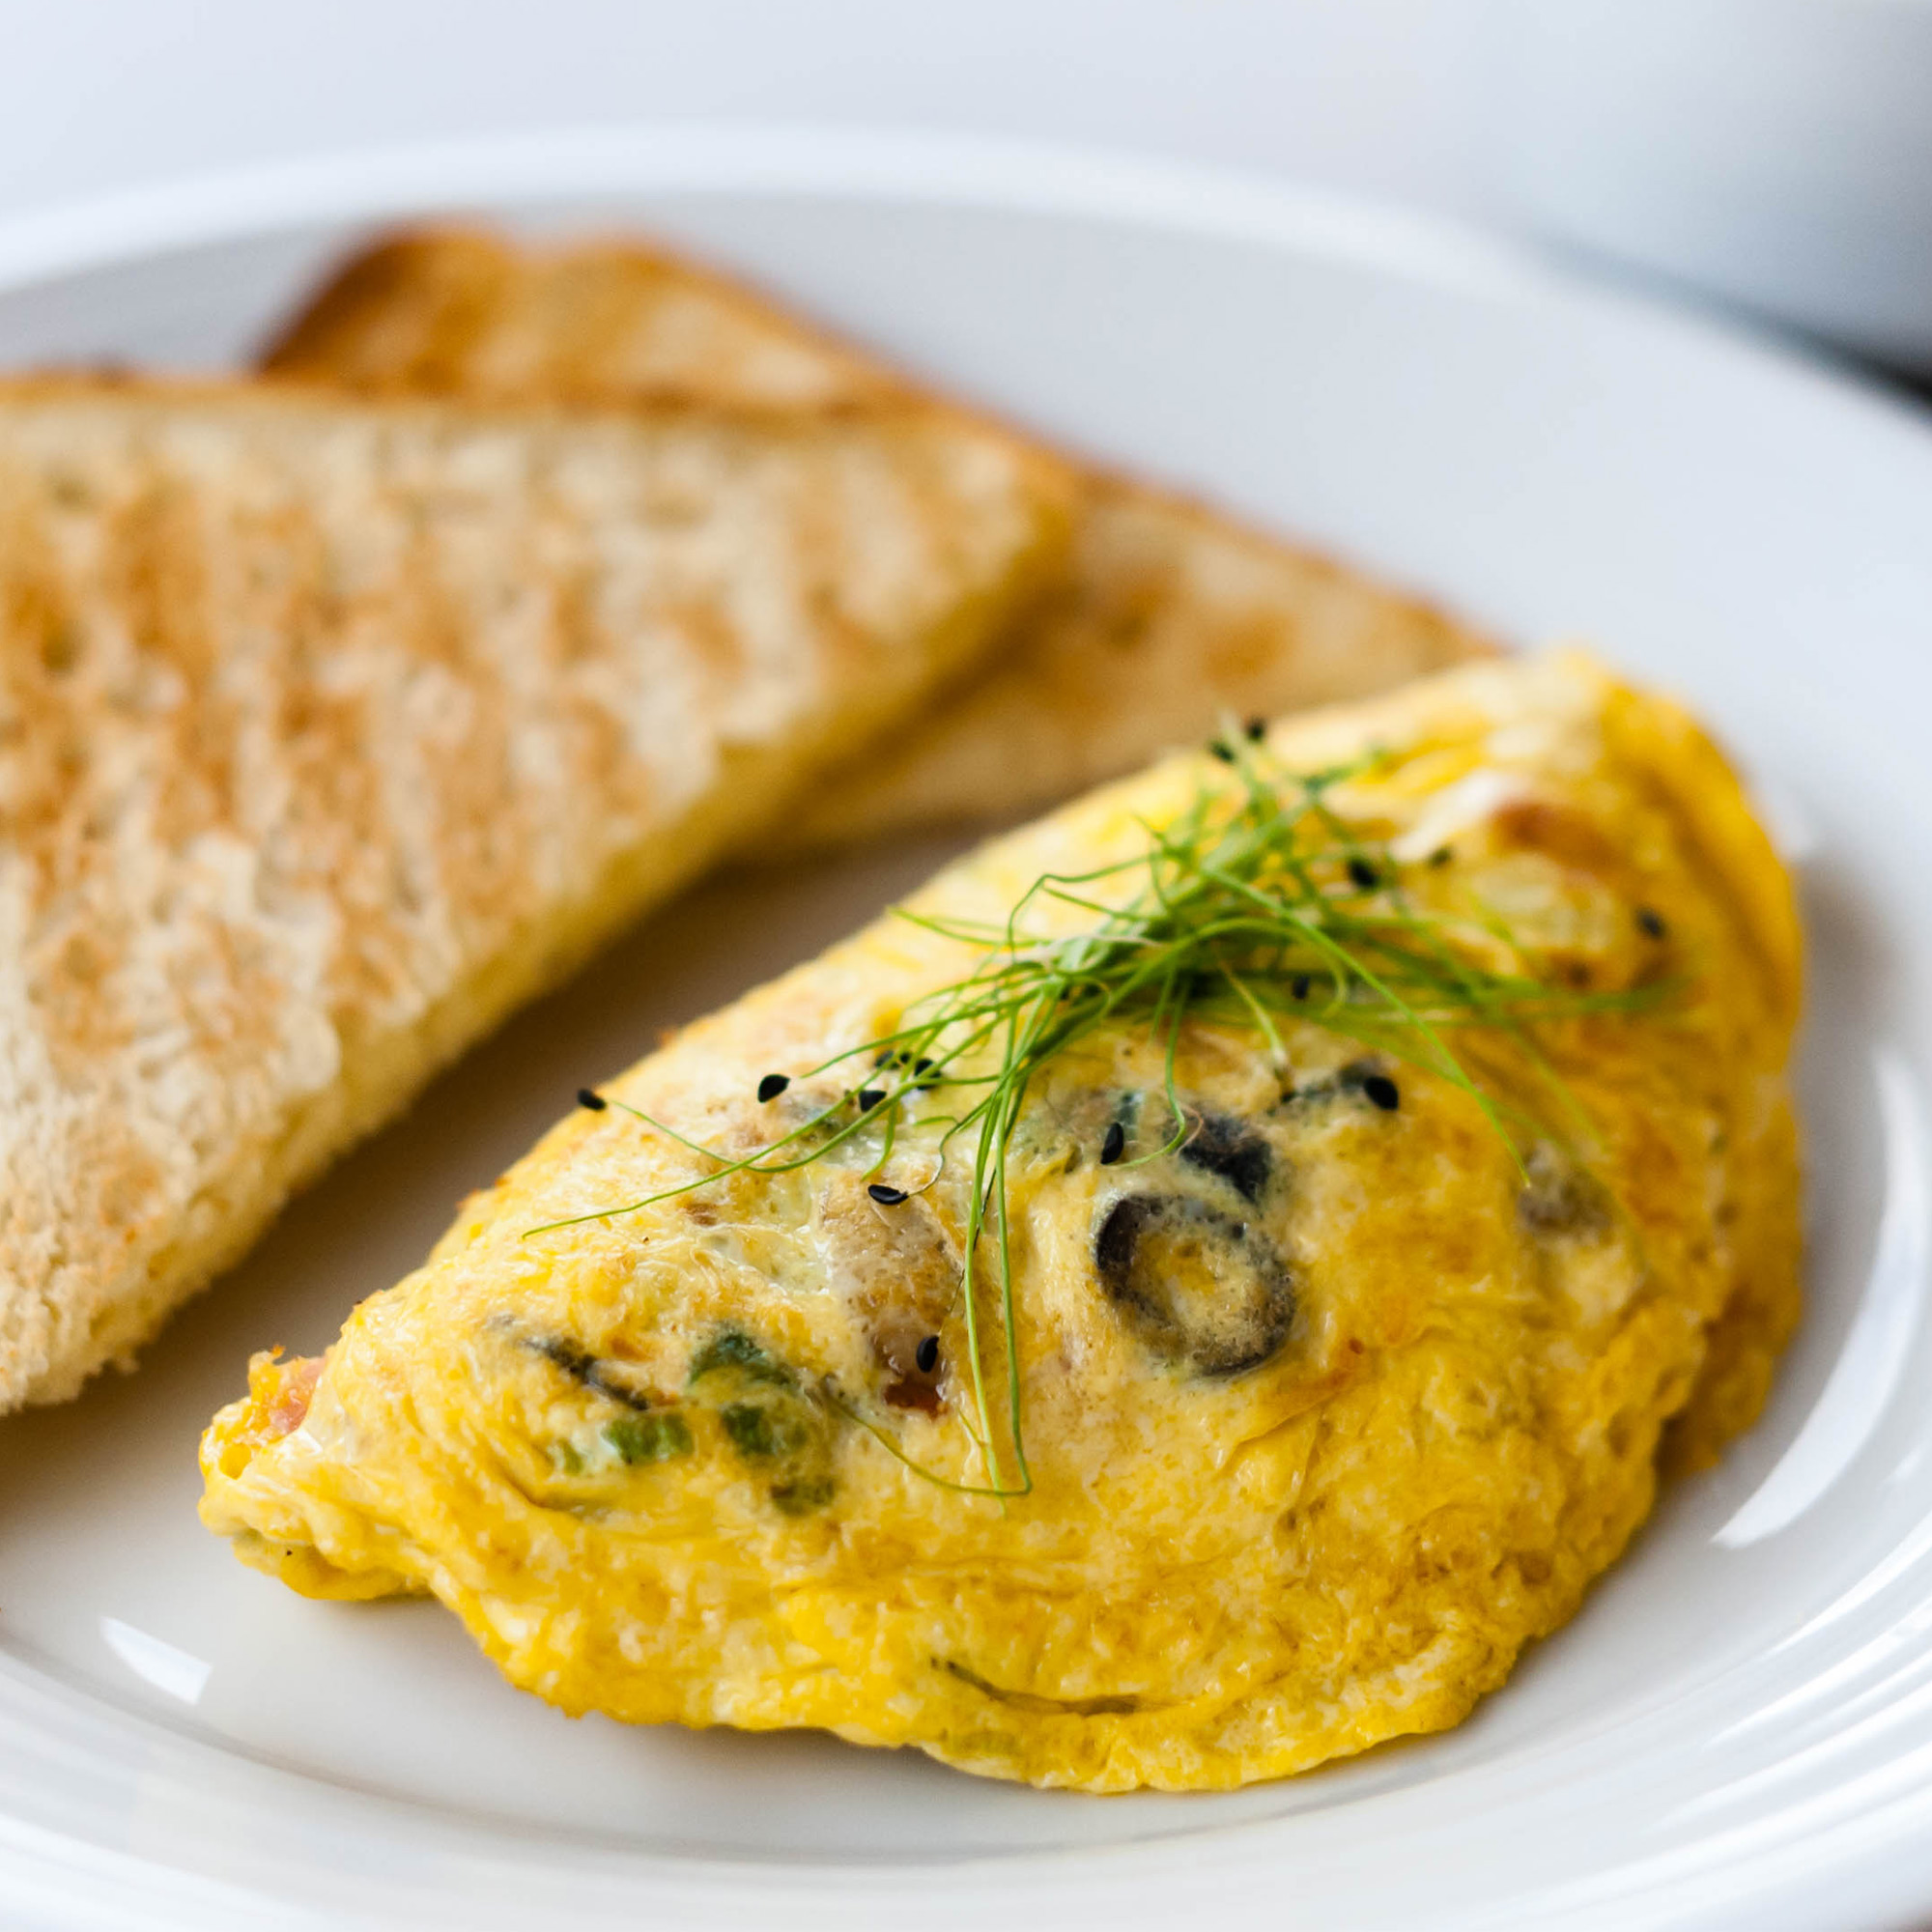 Omelets to order